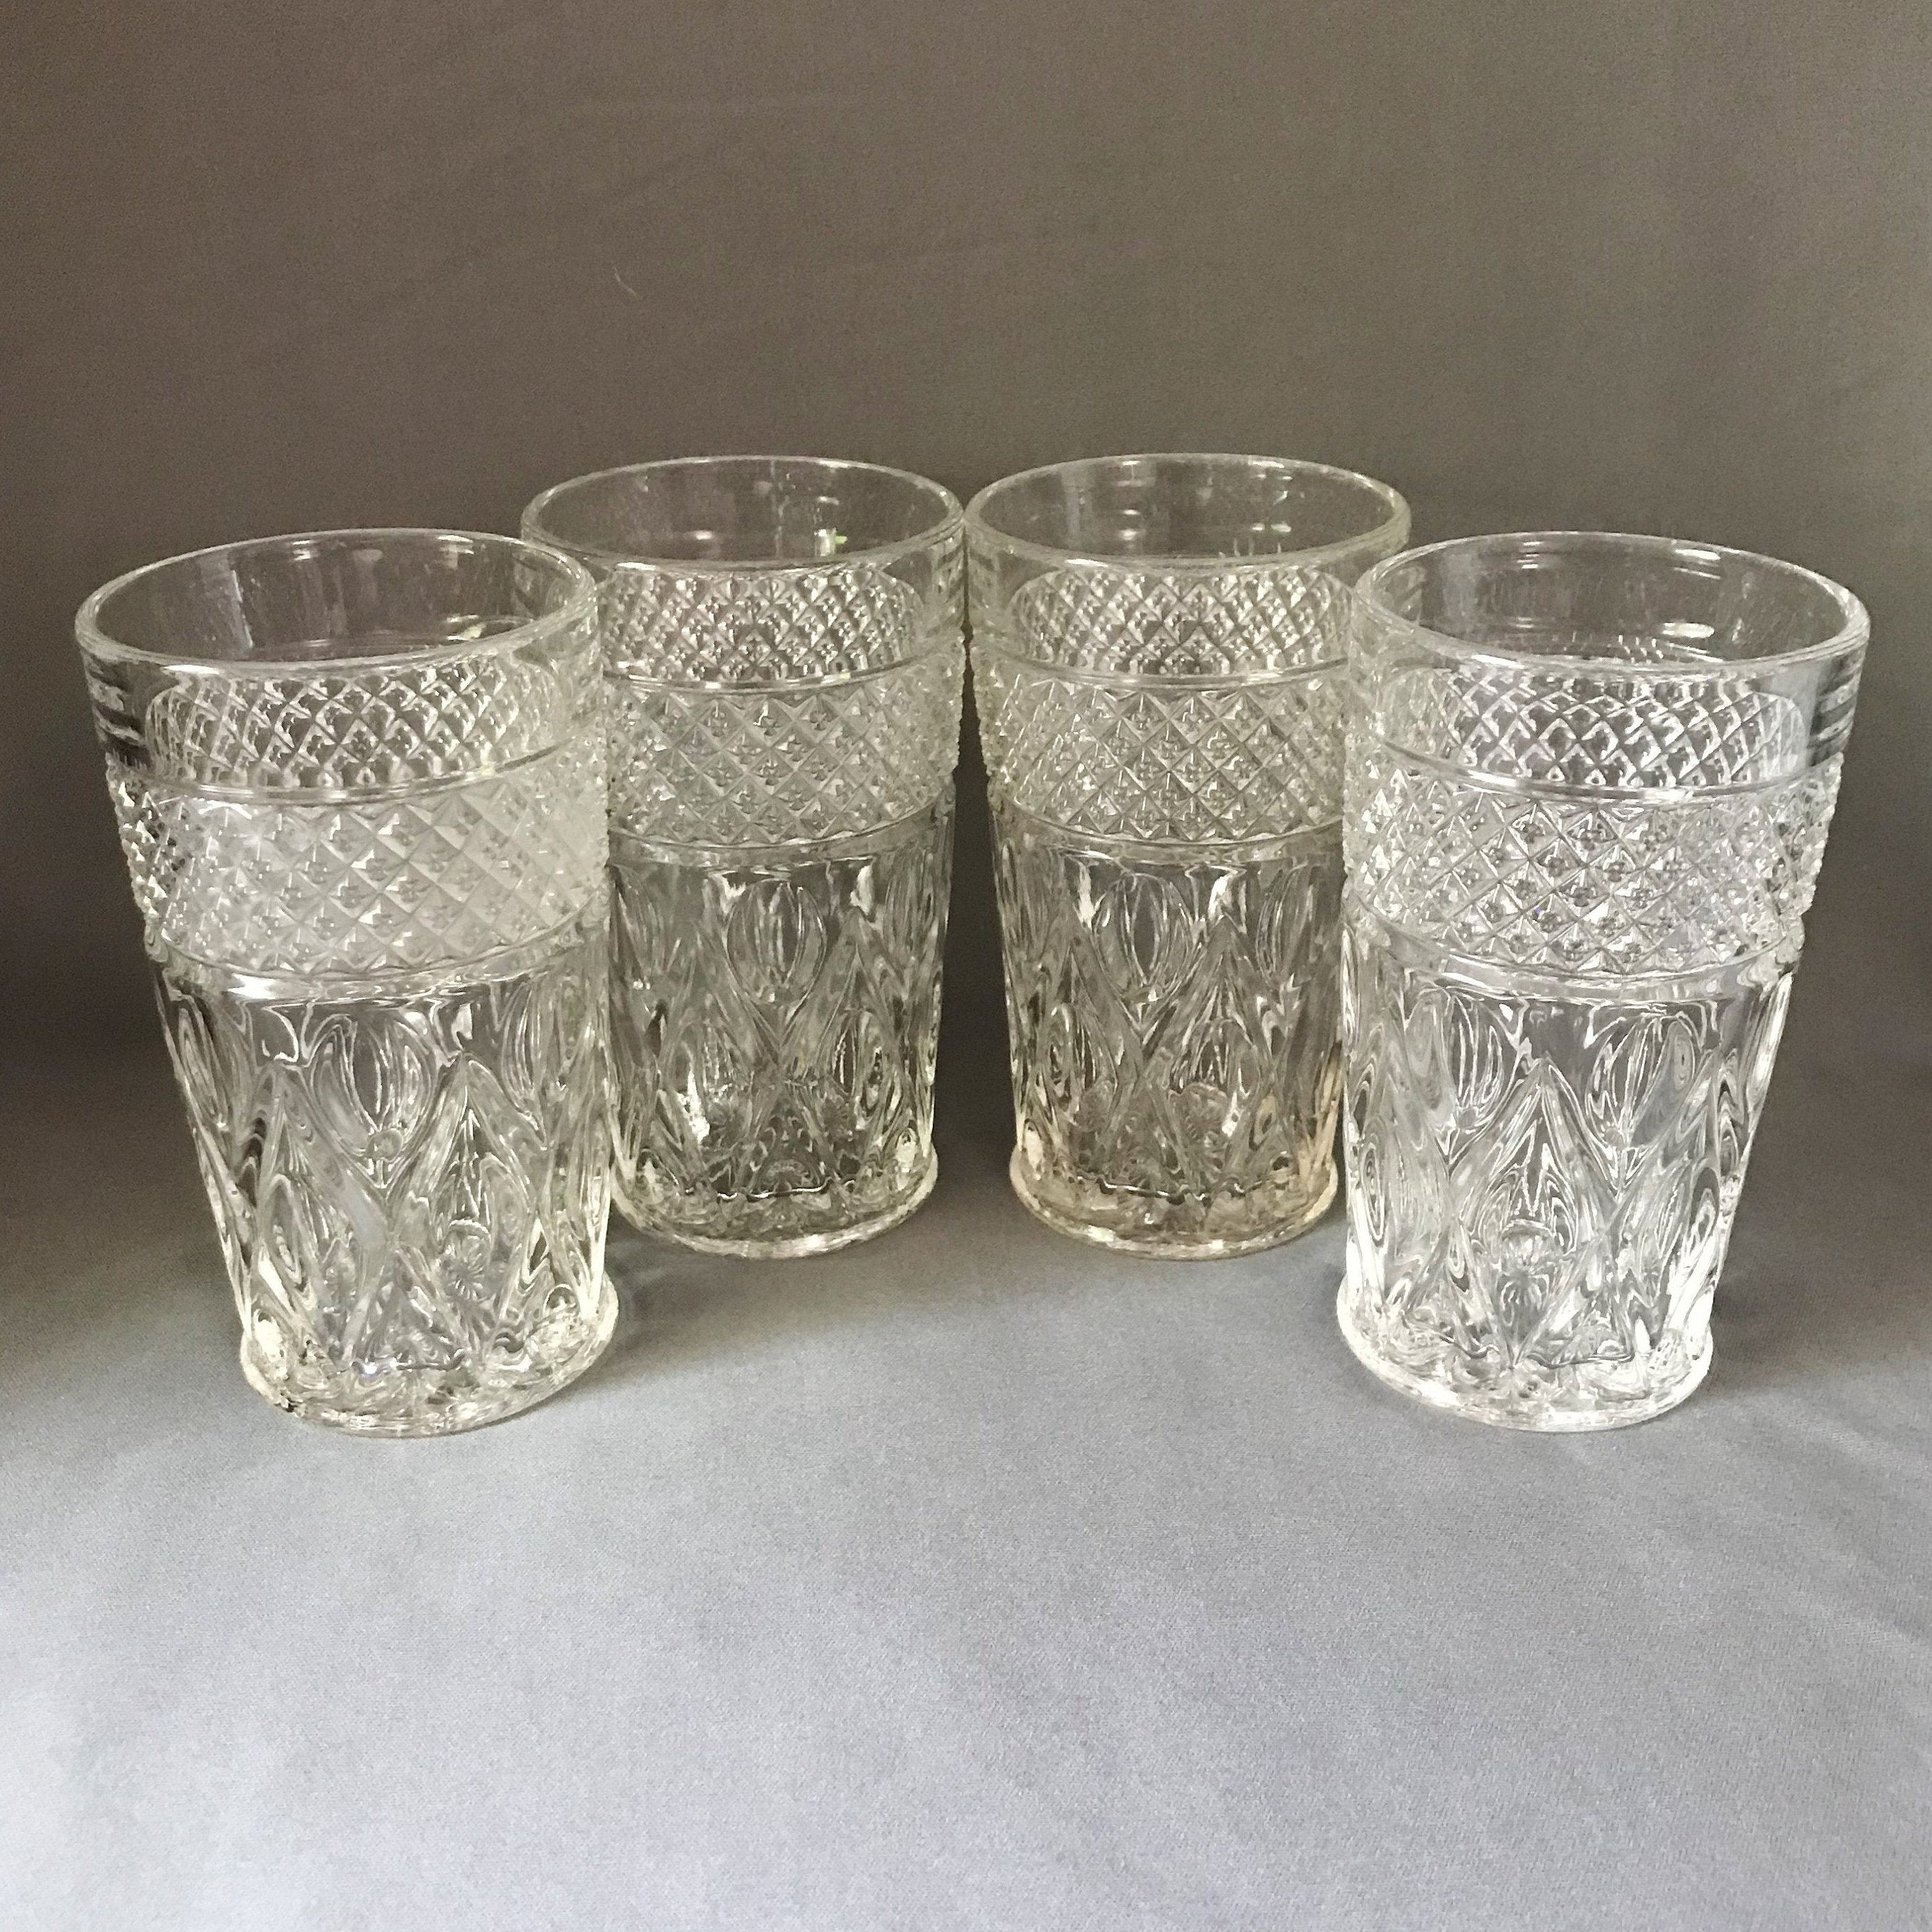 Set Of 4 Cape Cod Tumblers 10 Oz Vintage Ice Tea Glasses Highball Tumblers Imperial Glass Ohio Imperial Glass Tea Glasses Iced Tea Glasses